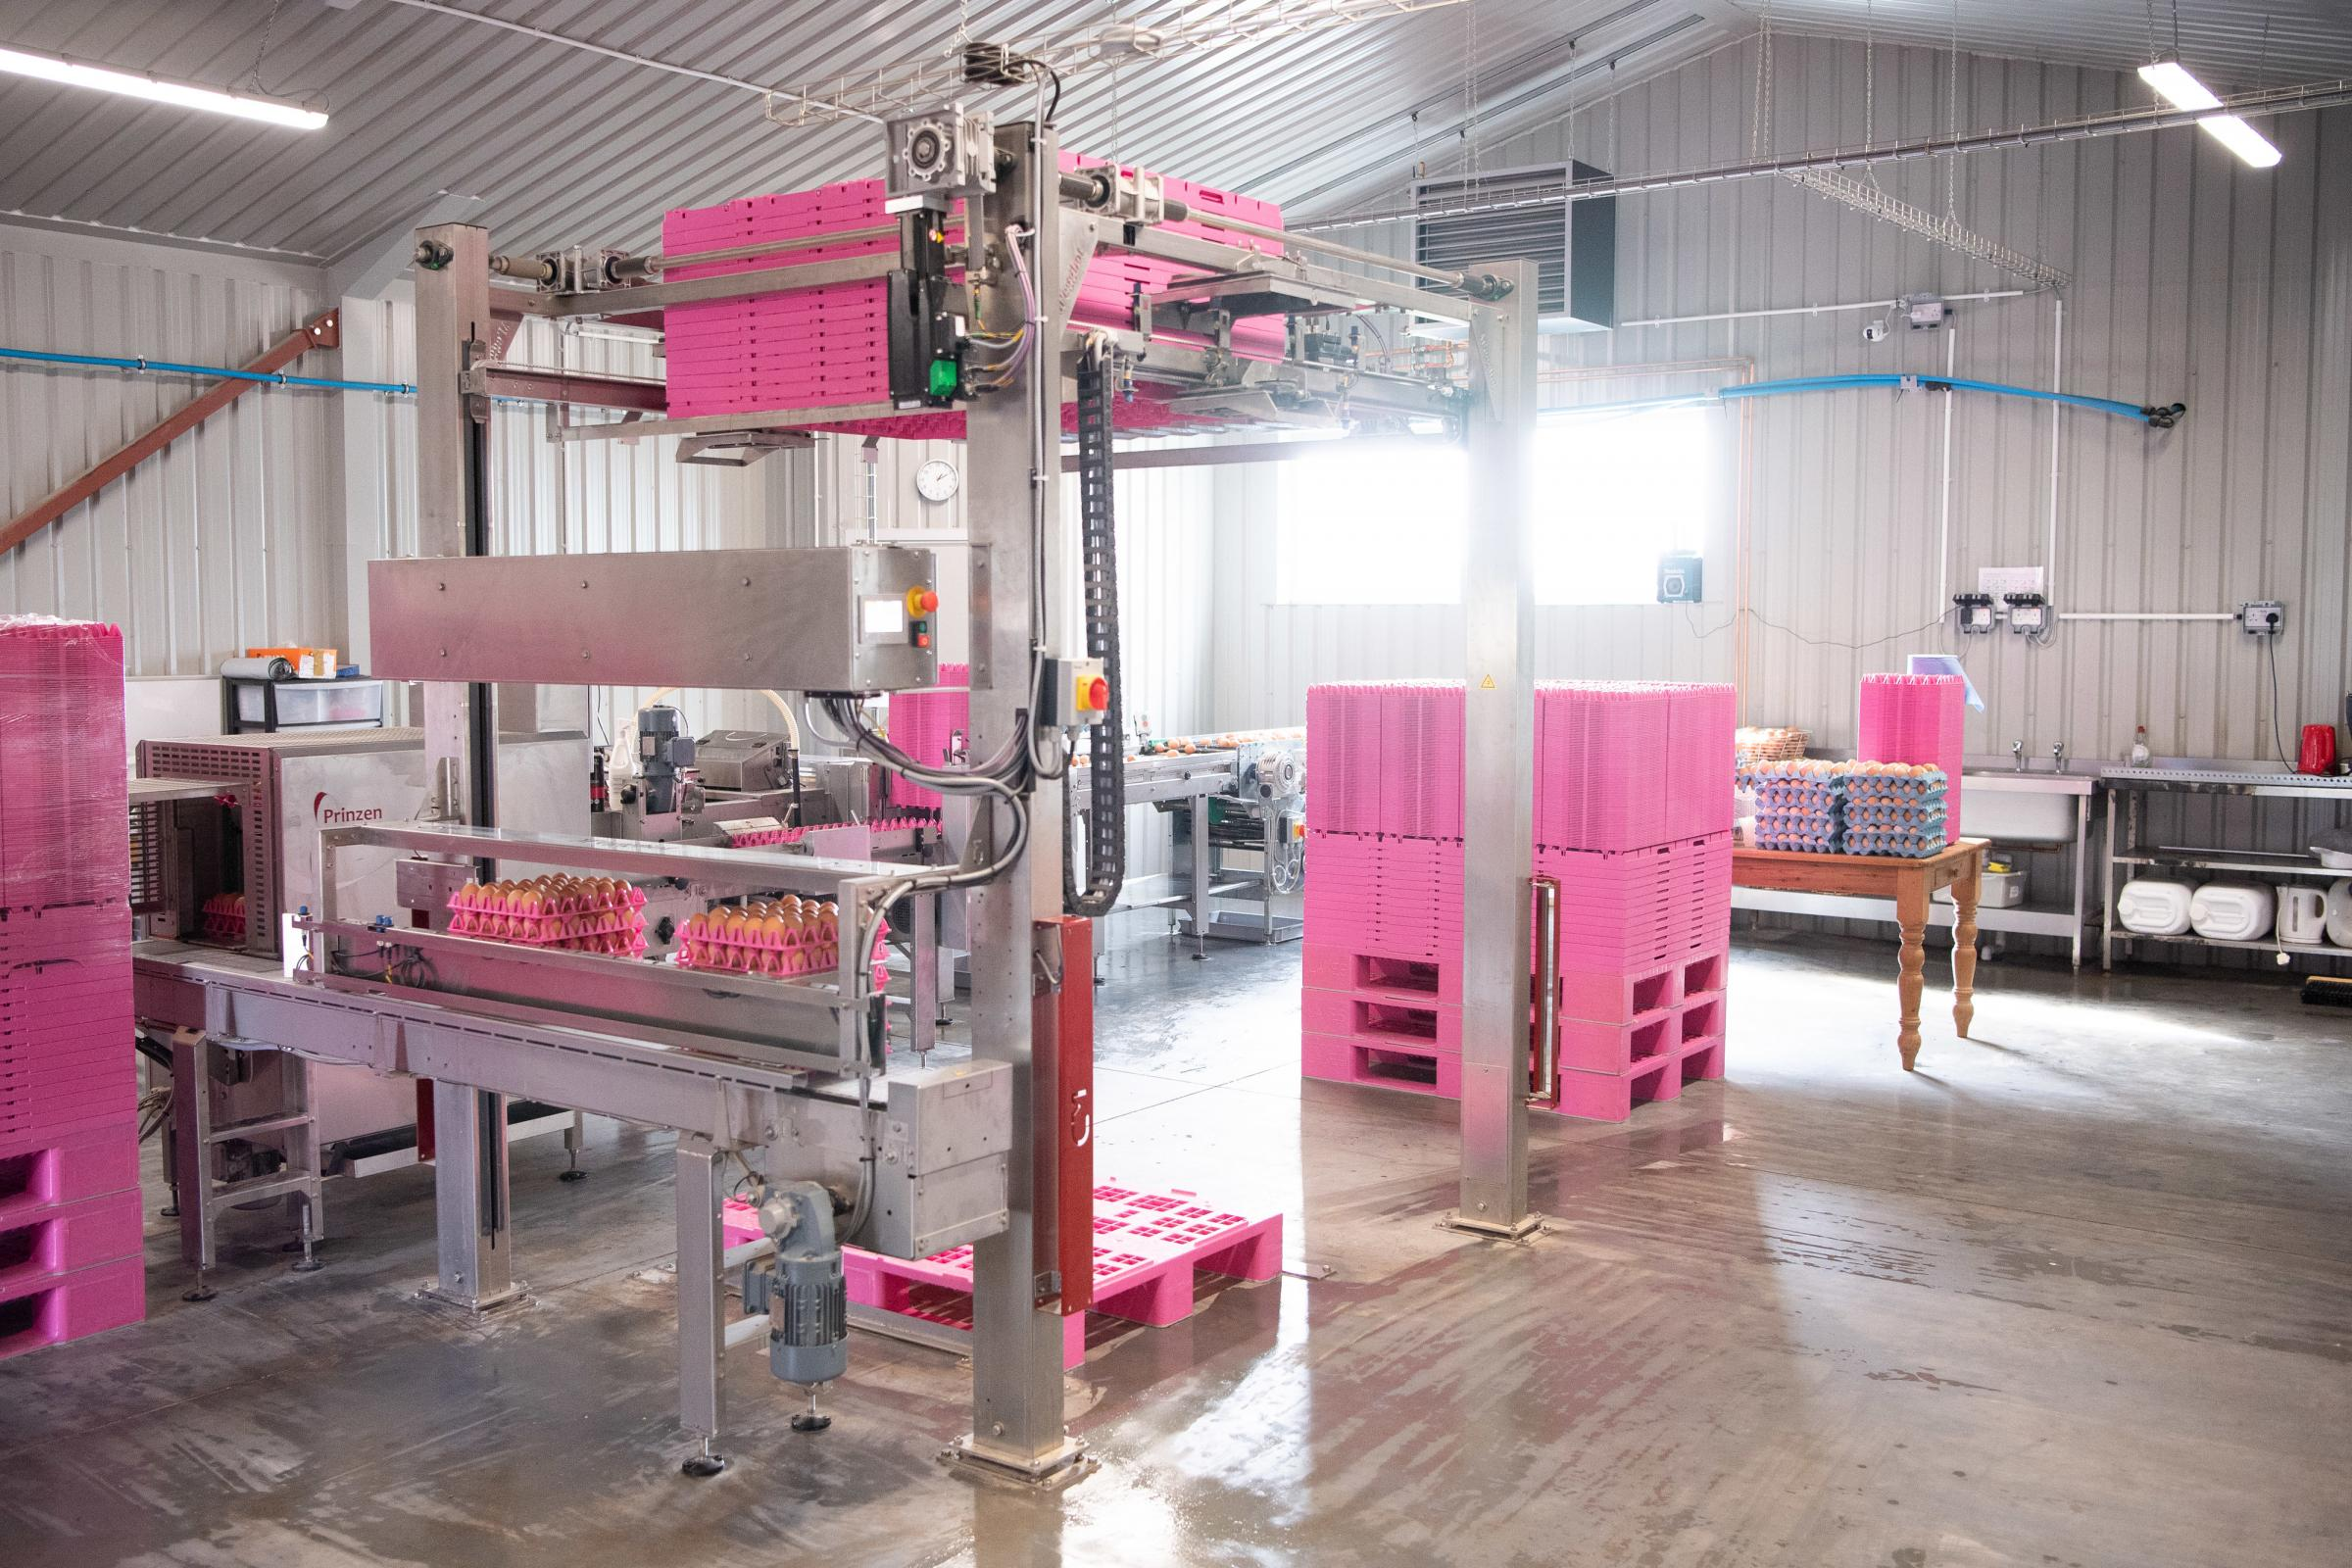 Egg packing shed, all eggs are placed on trays then automatically stacked on to pallets Ref:RH210321150 Rob Haining / The Scottish Farmer...